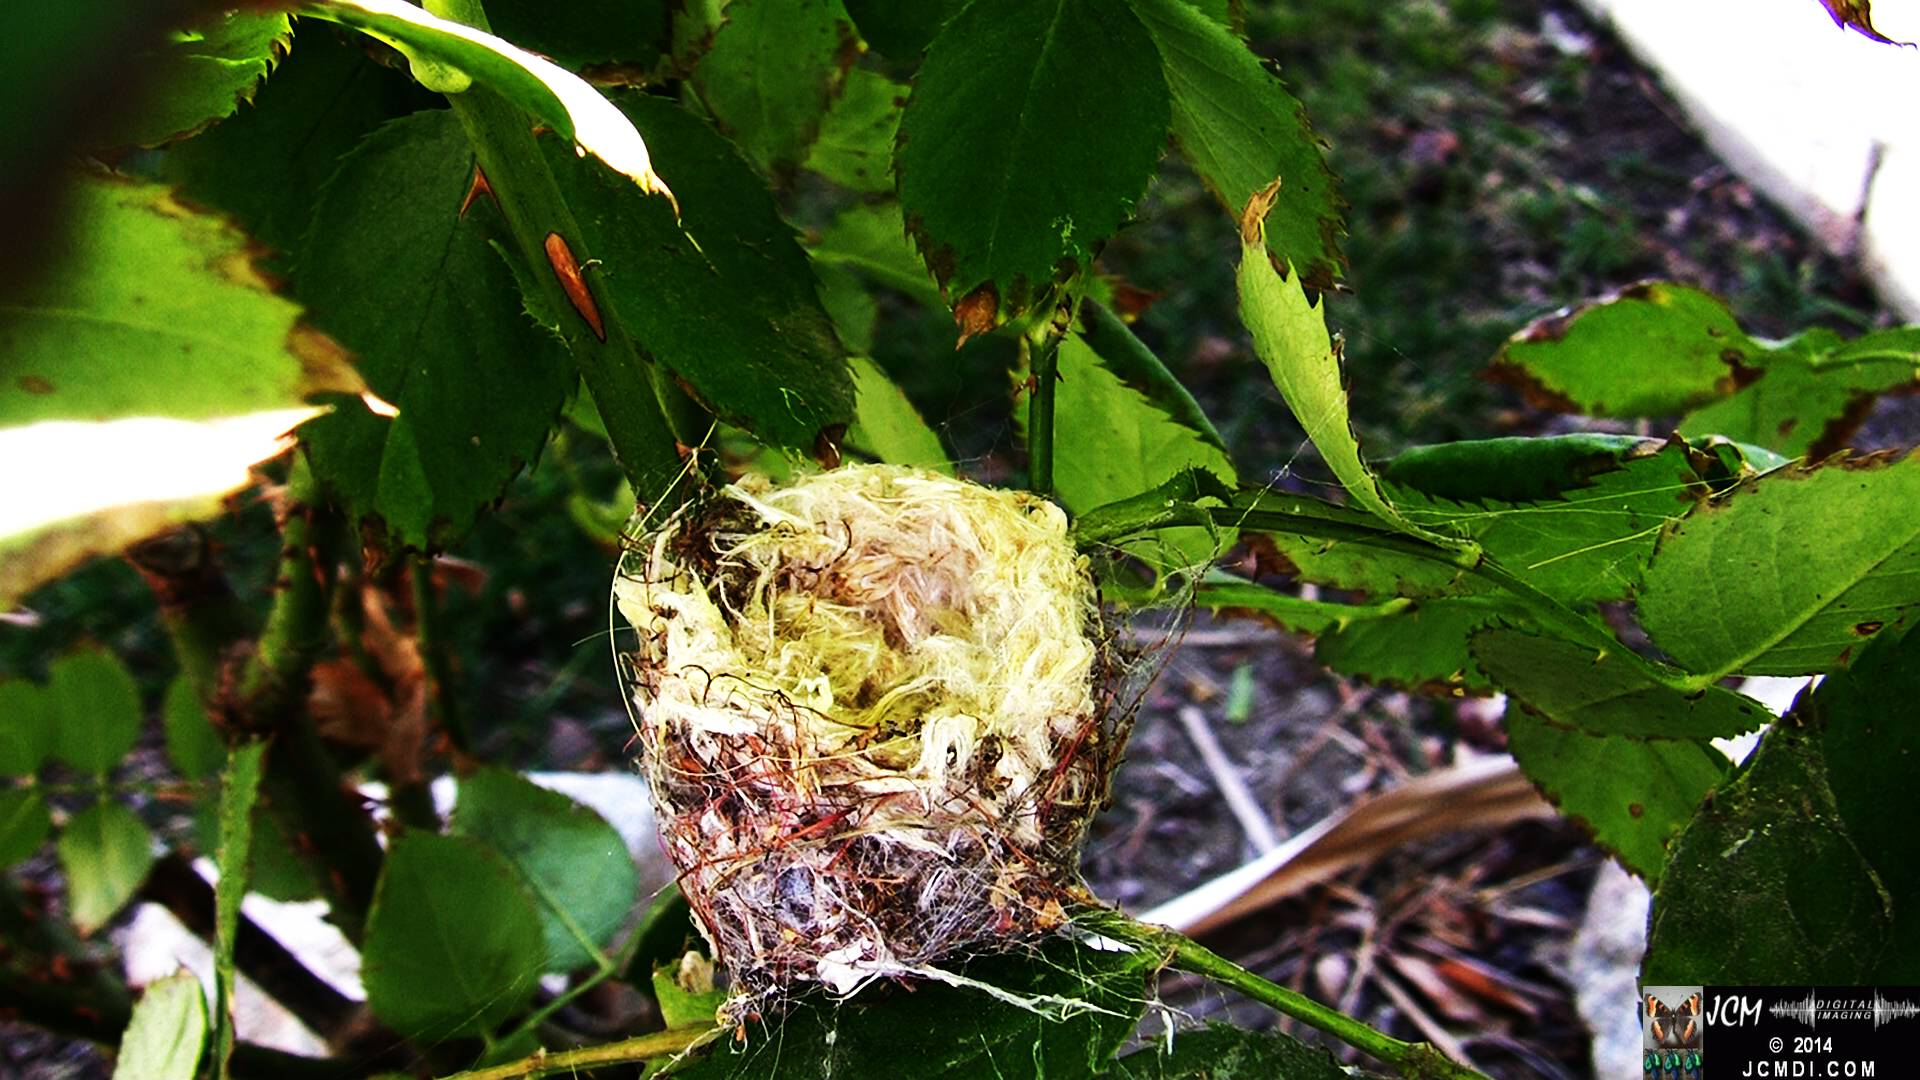 Allen's Hummingbird empty nest under construction...